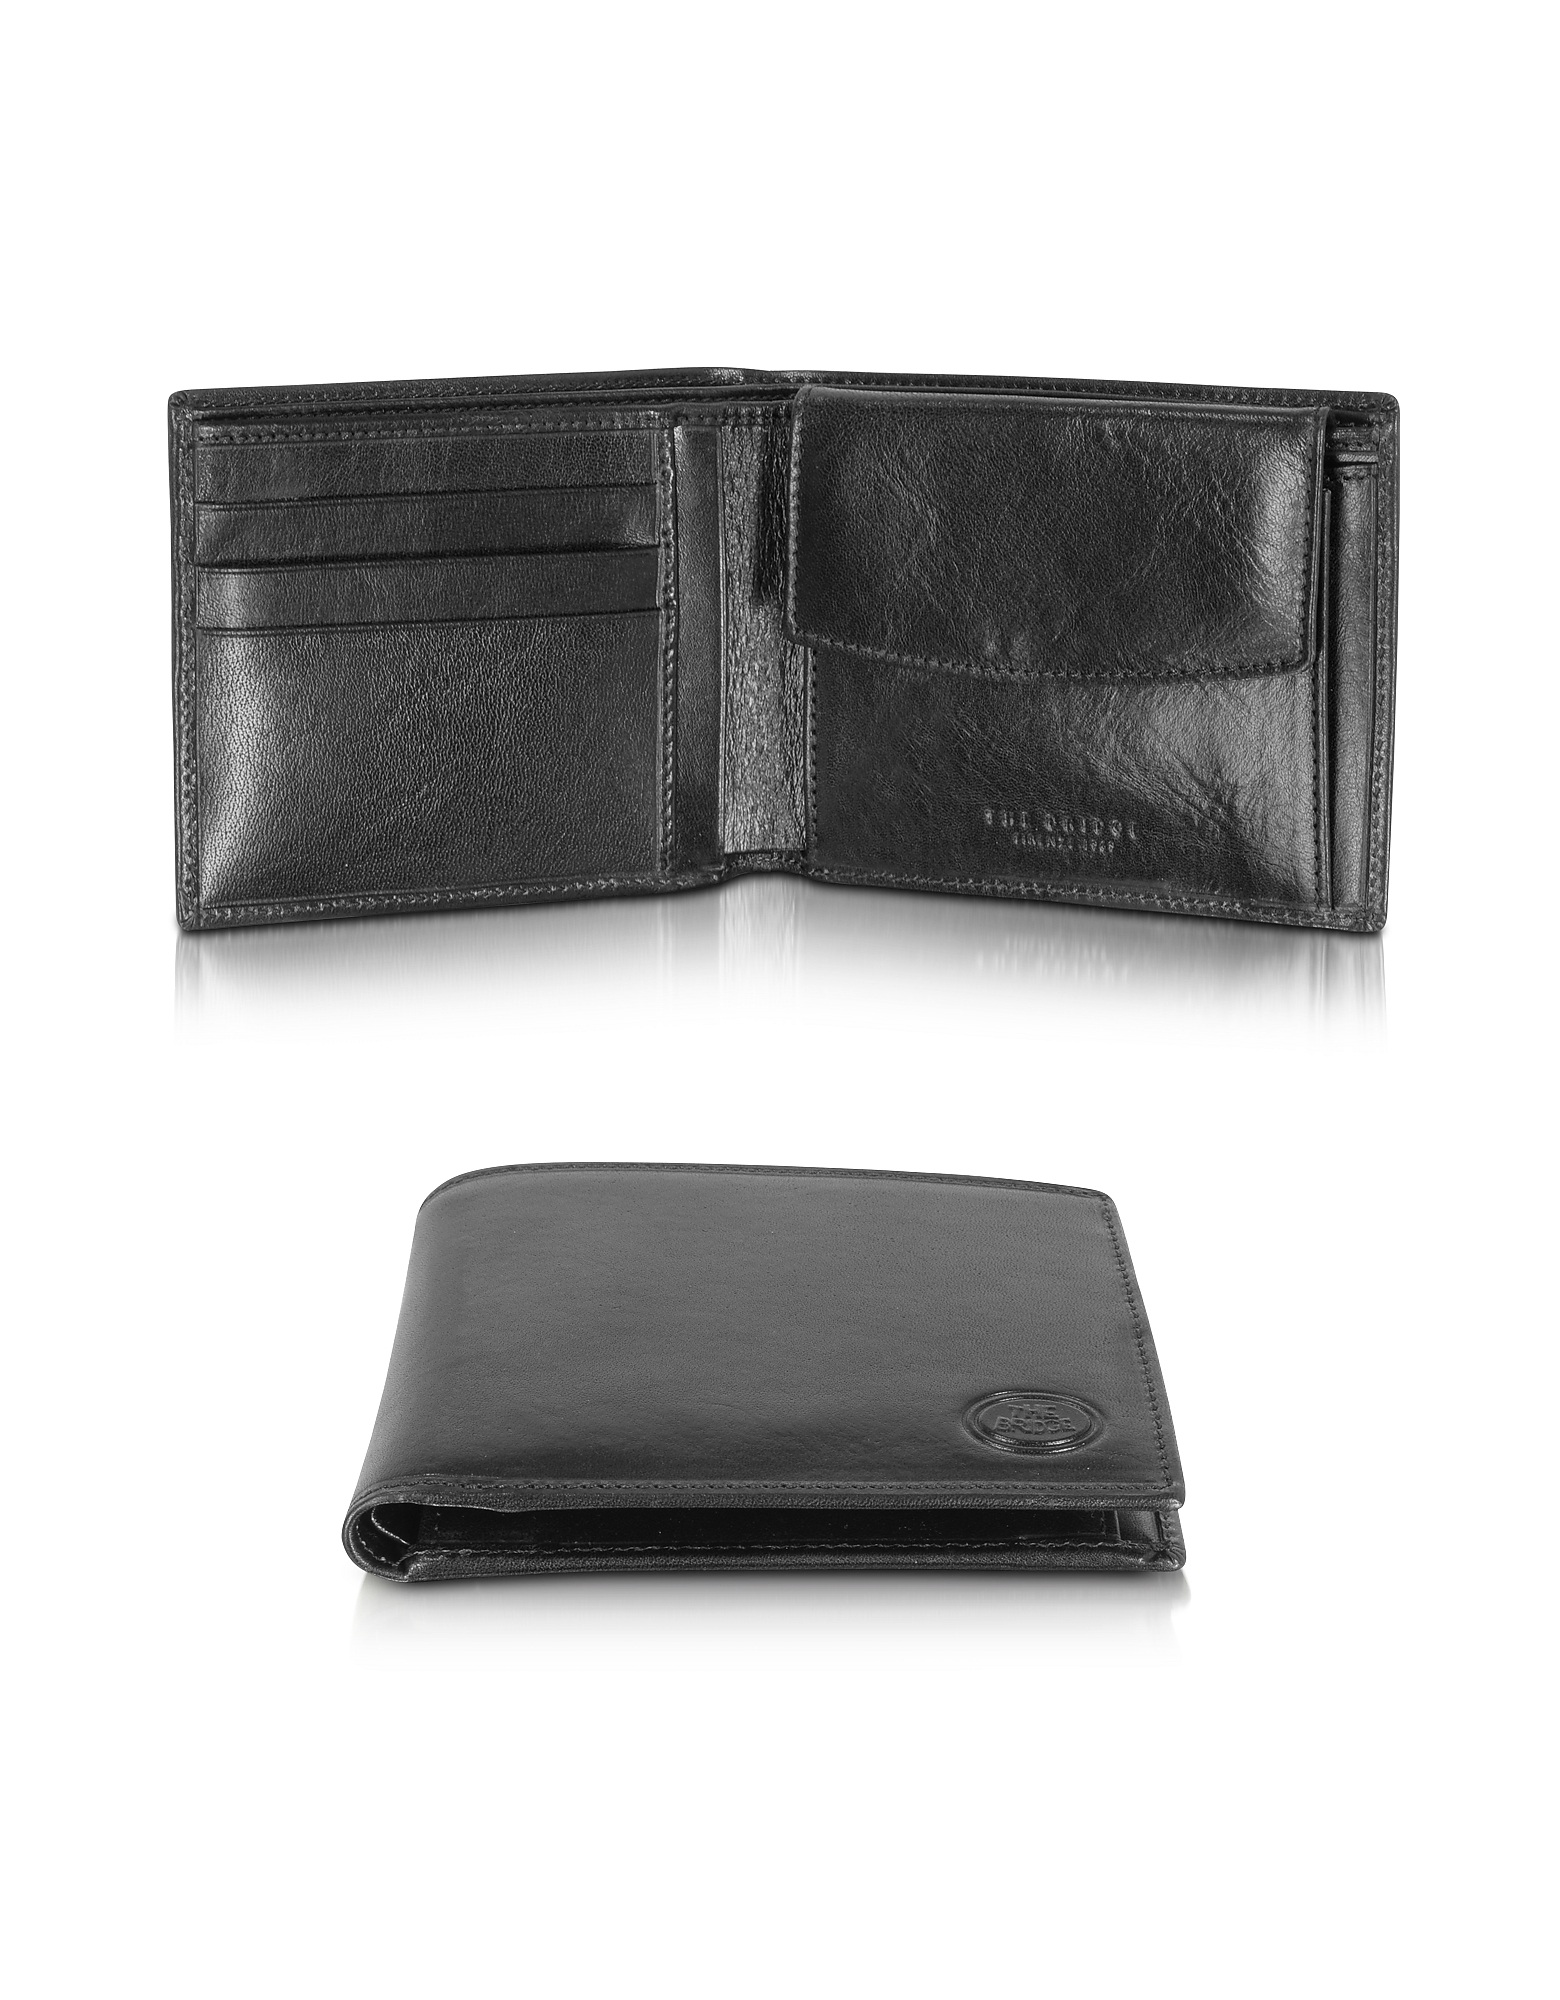 The Bridge Wallets, Story Uomo Black Leather Wallet w/Coin Pocket